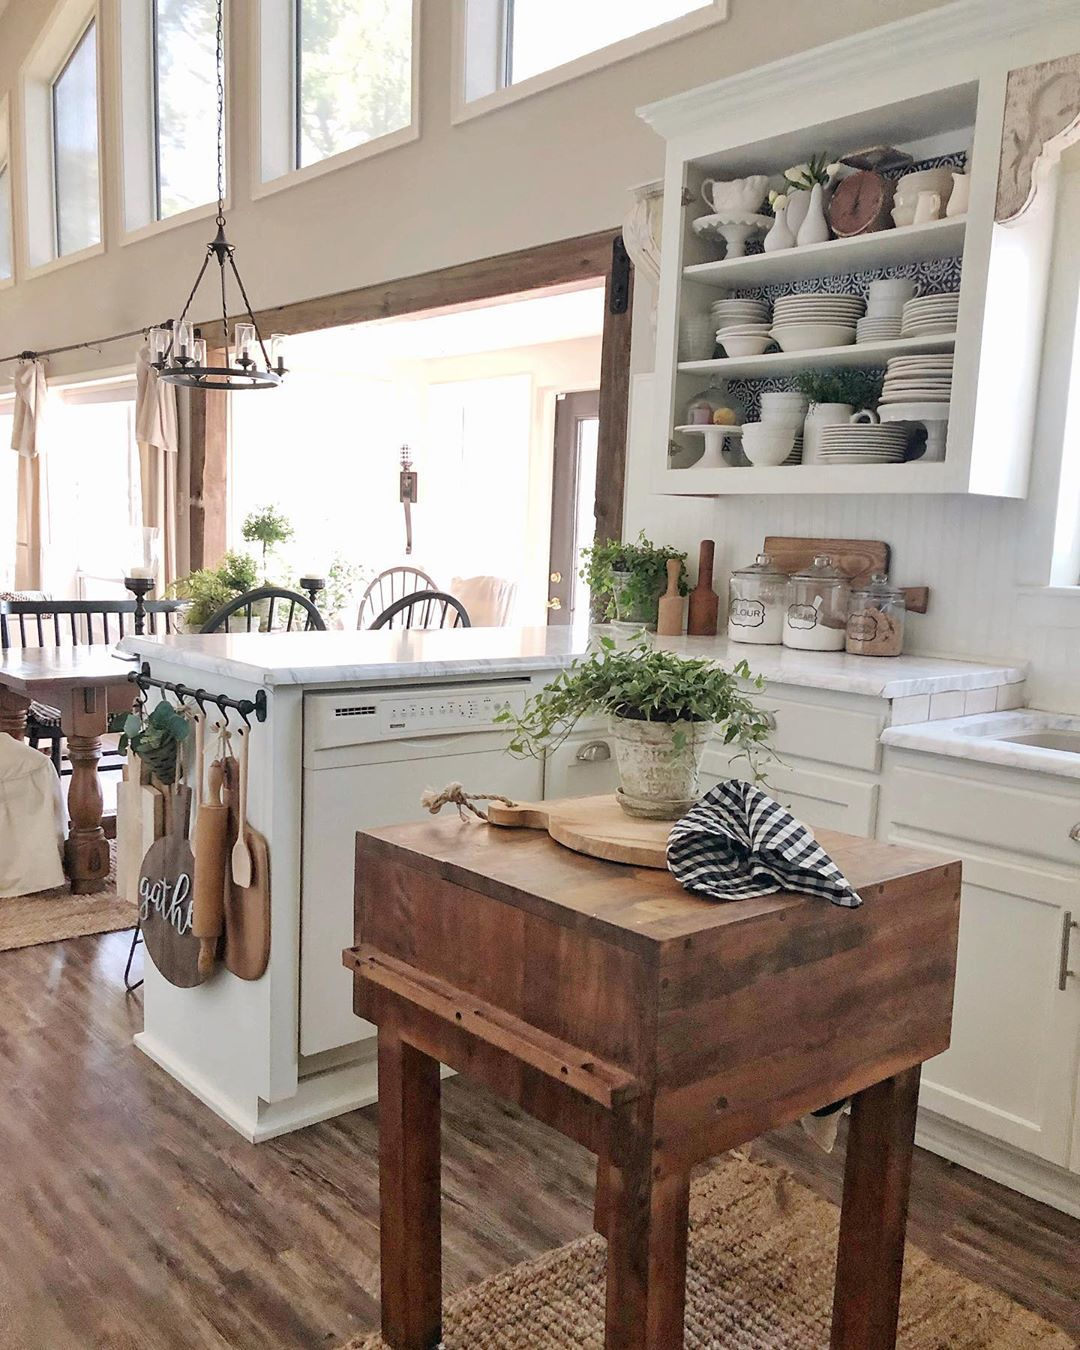 Design Your Own Kitchen: Love The Small Wood Kitchen Island @hipandhumblestyle